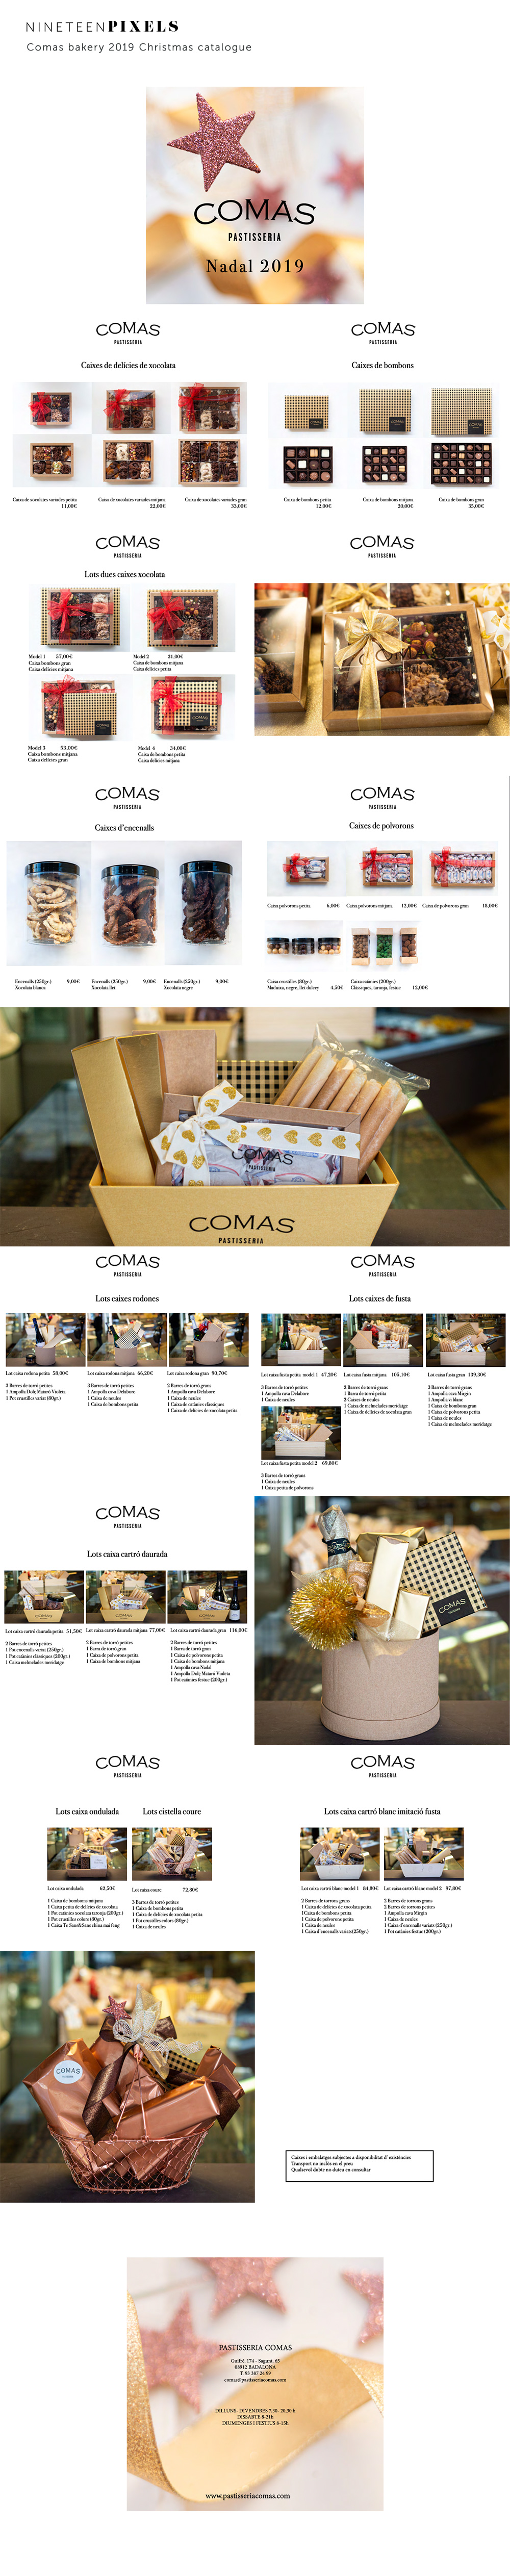 Comas bakery  2019 Christmas catalogue